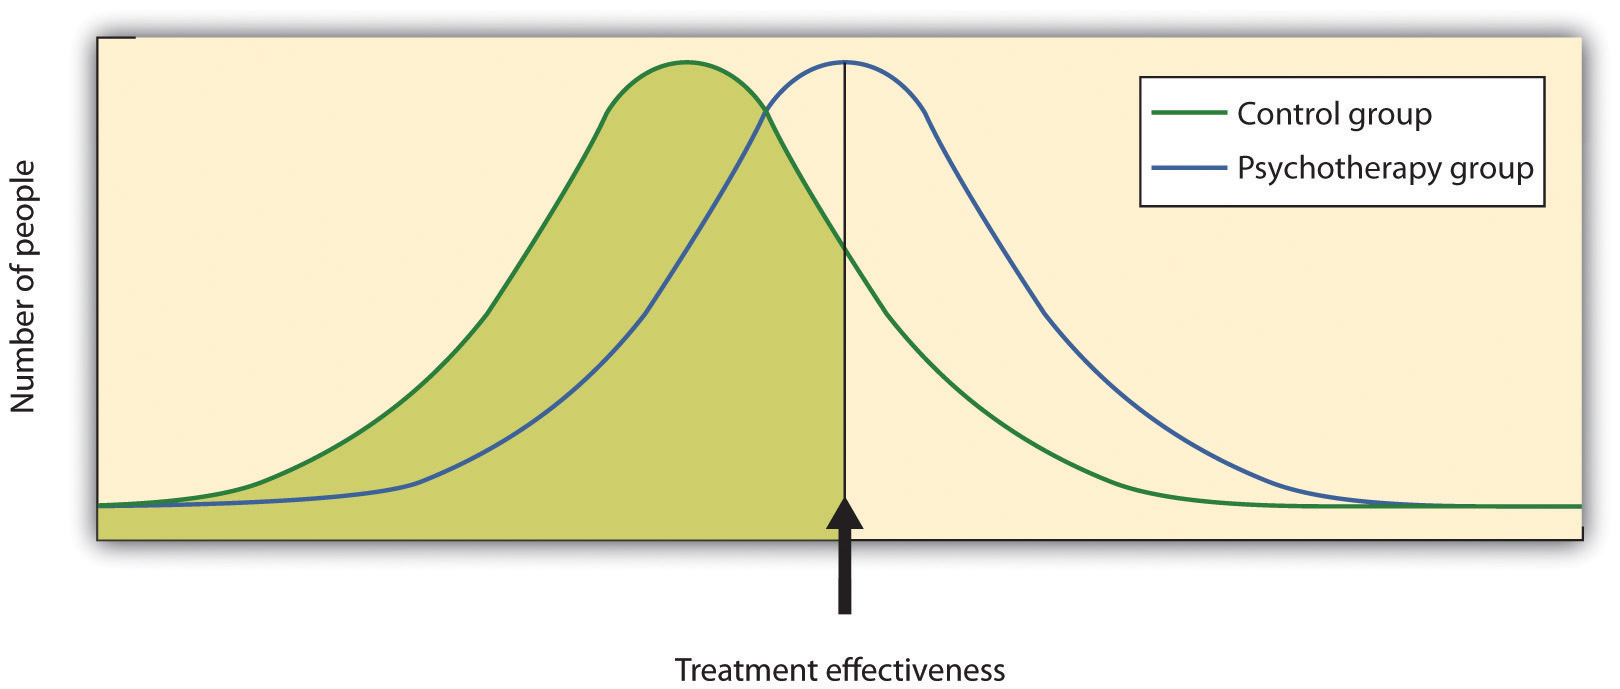 Meta-analyses of the outcomes of psychotherapy have found that, on average, the distribution for people who get treatment is higher than for those who do not get treatment.